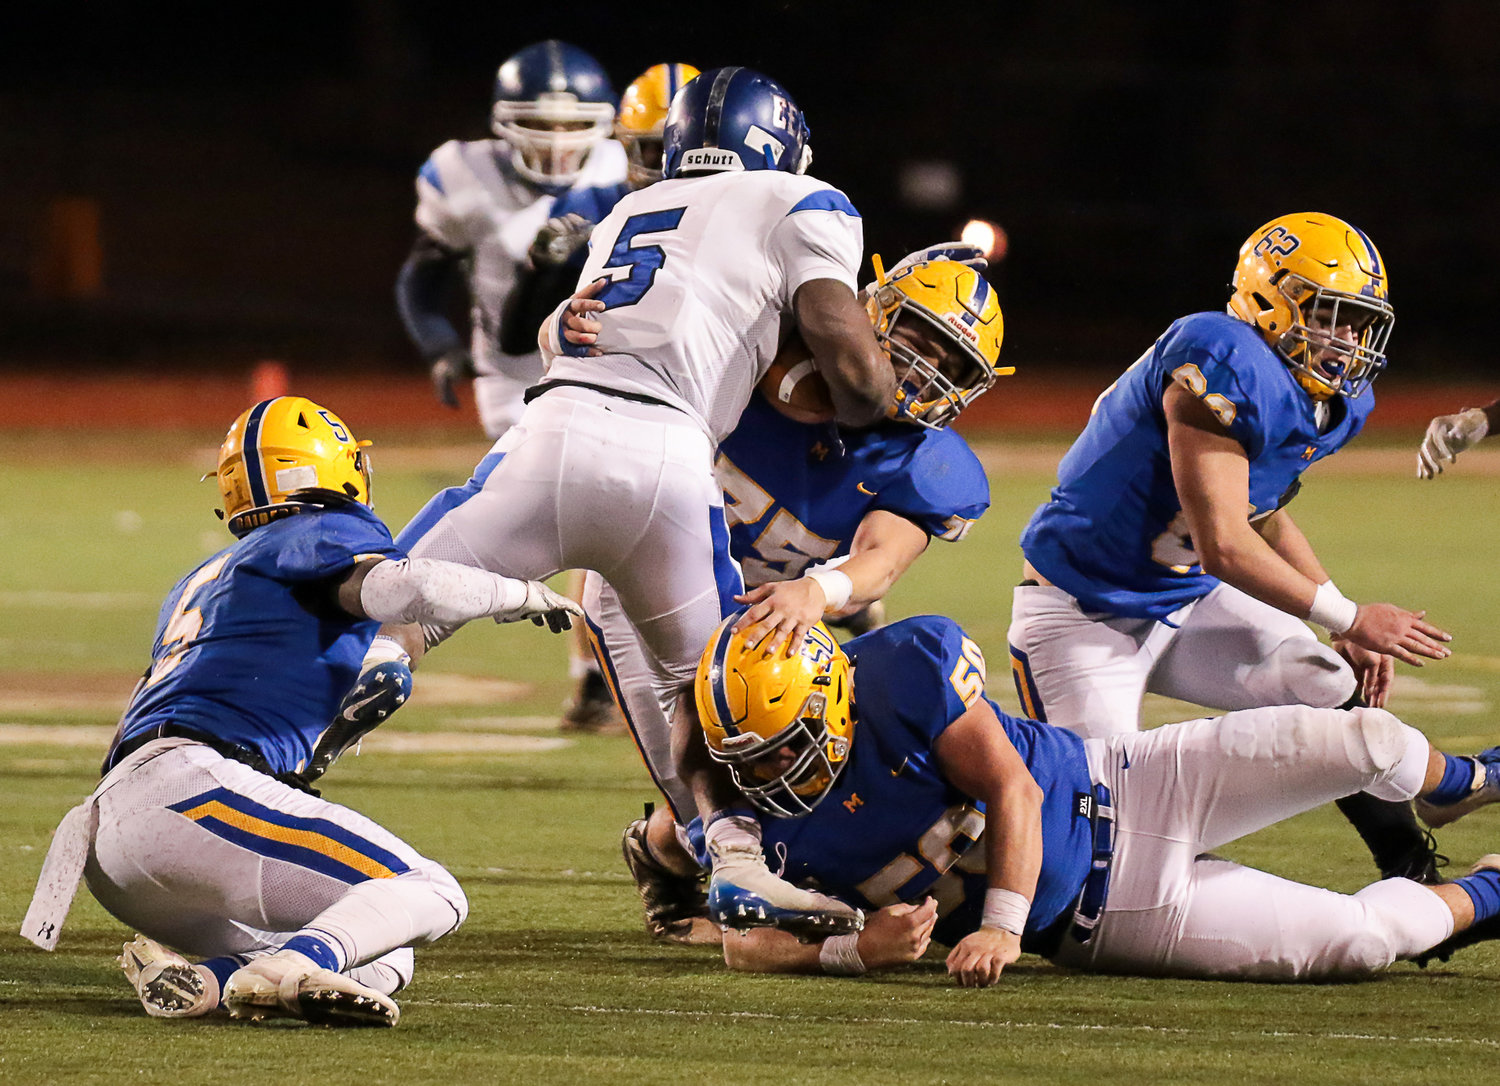 Middletown's Travyon Joseph (No. 5), Morgan Billman (No. 75), Joe Gusler (No. 50) and Cole Senior (No. 62) work on bringing down the ball carrier during Middletown's 21-14 win over Conwell-Egan at Milton Hershey High School in the PIAA 3A state quarterfinals Nov. 23.